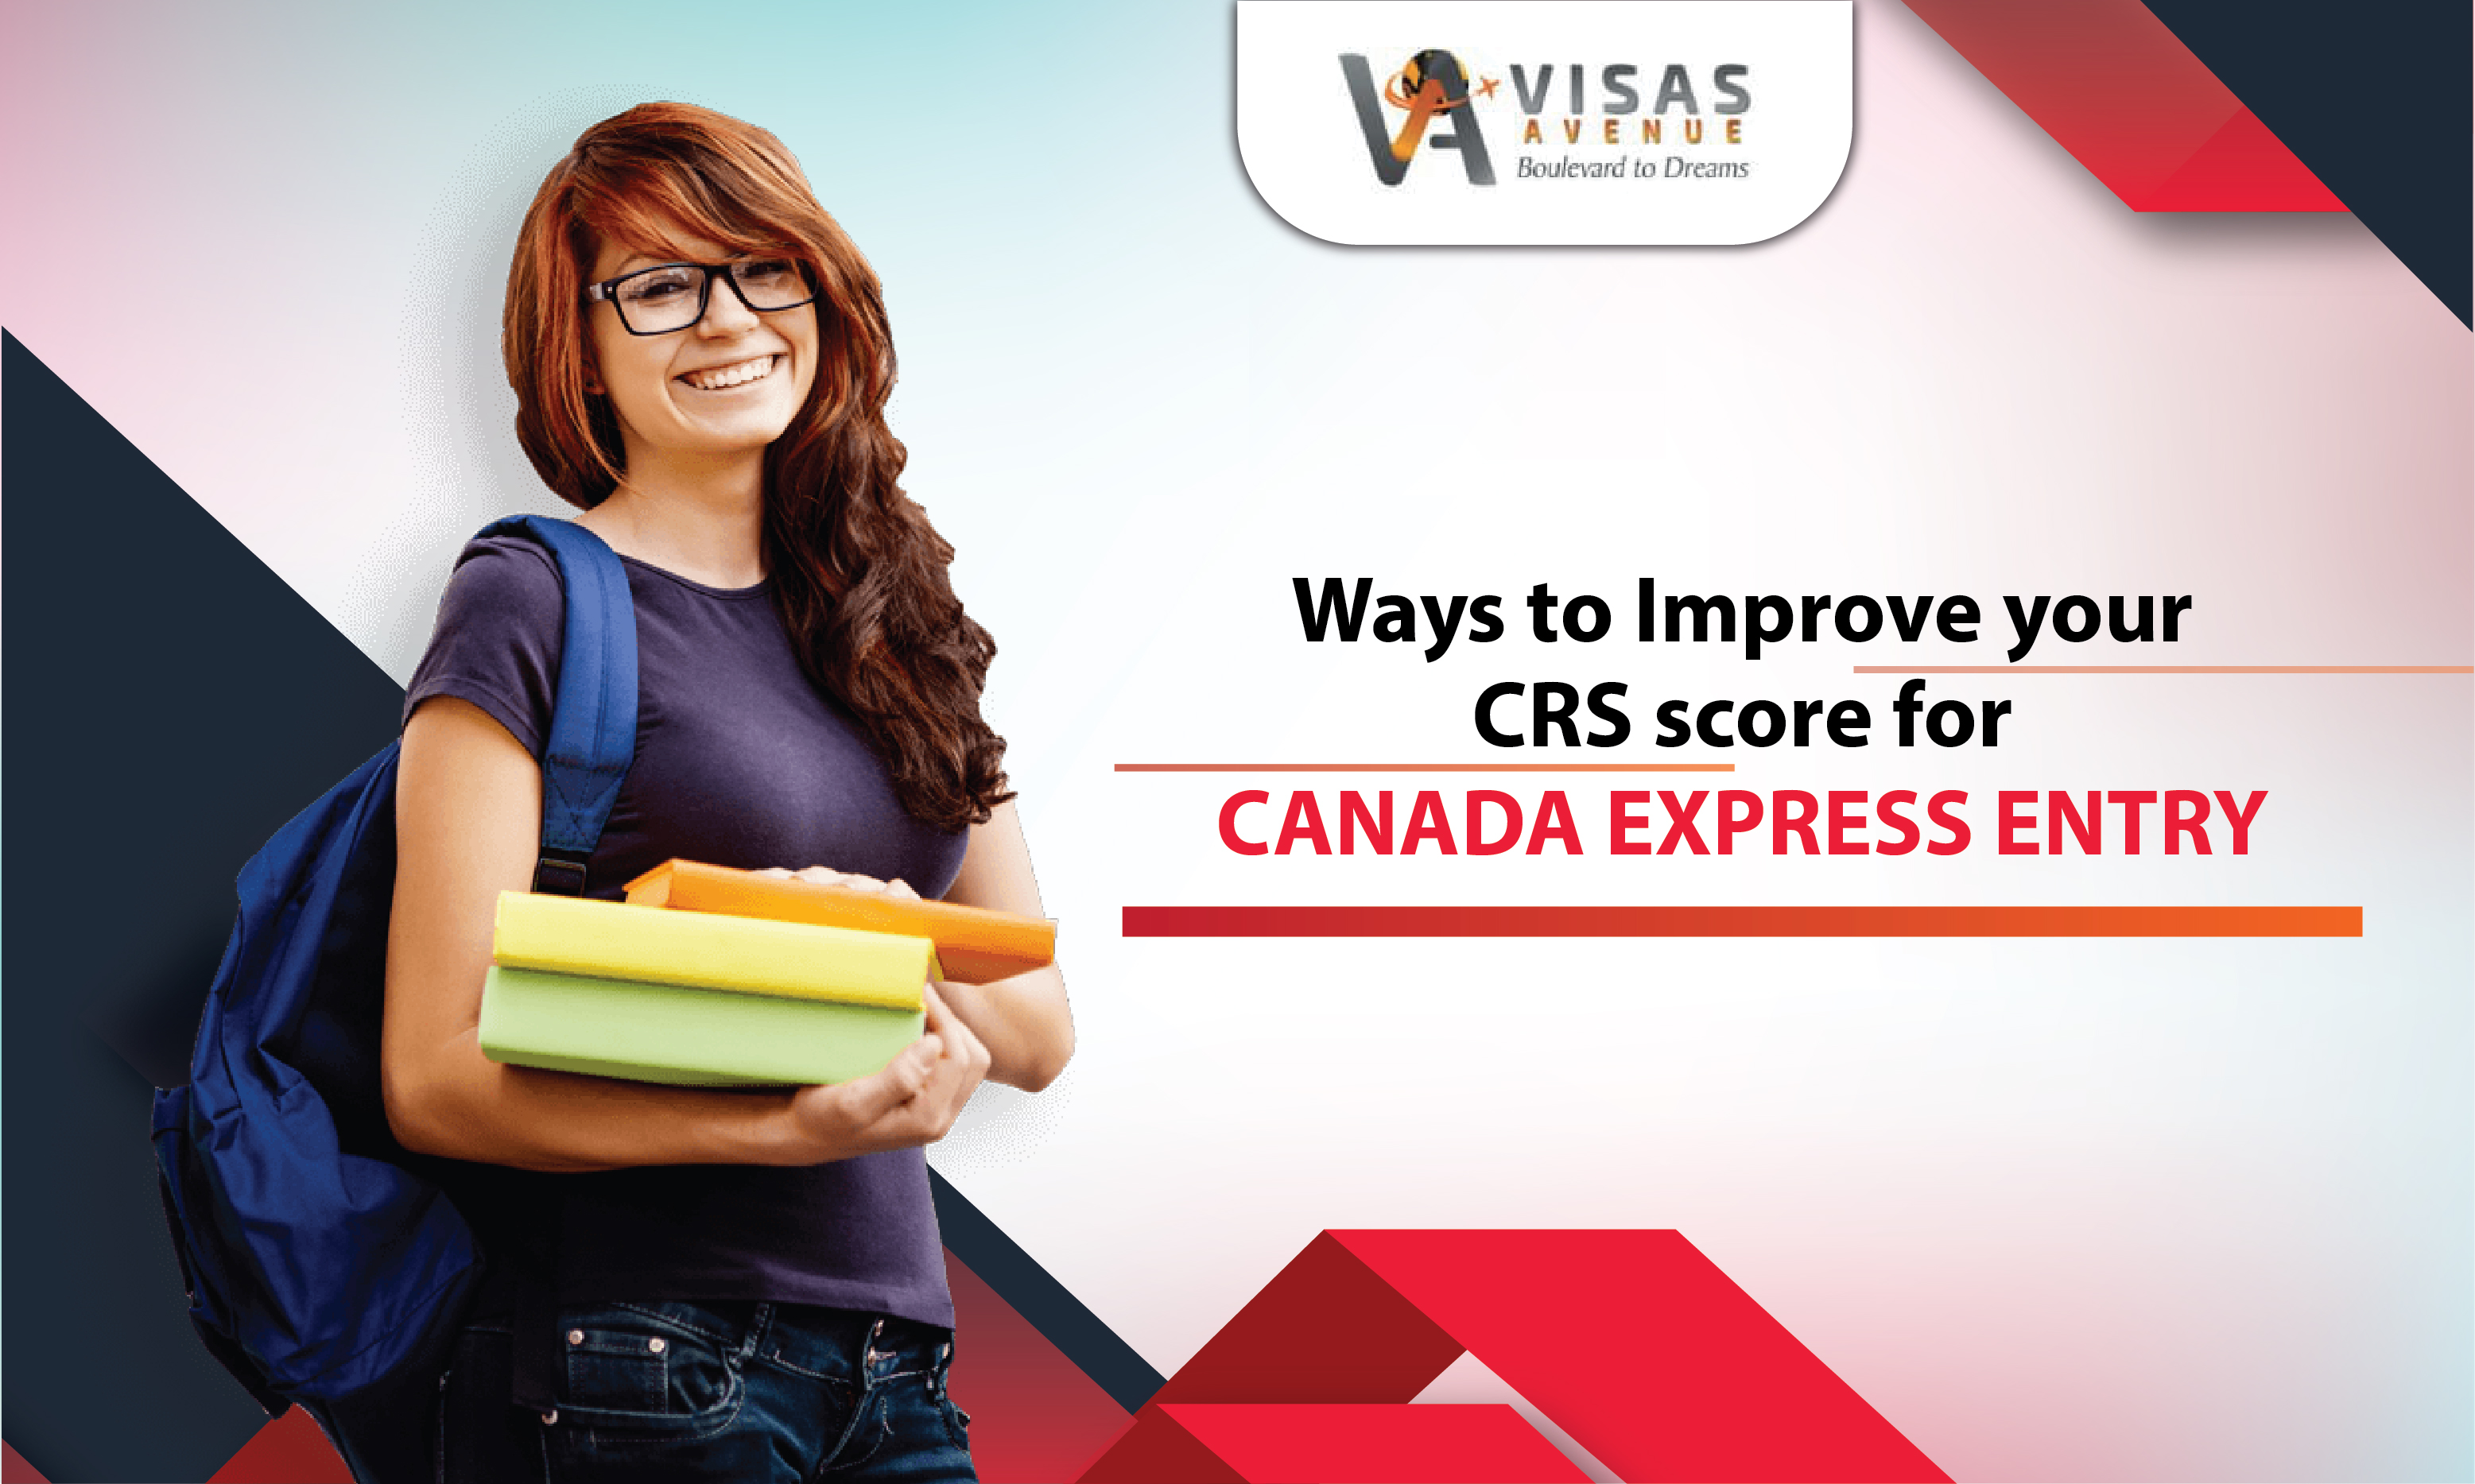 Top 3 Ways to Increase Your CRS Score in Express Entry System